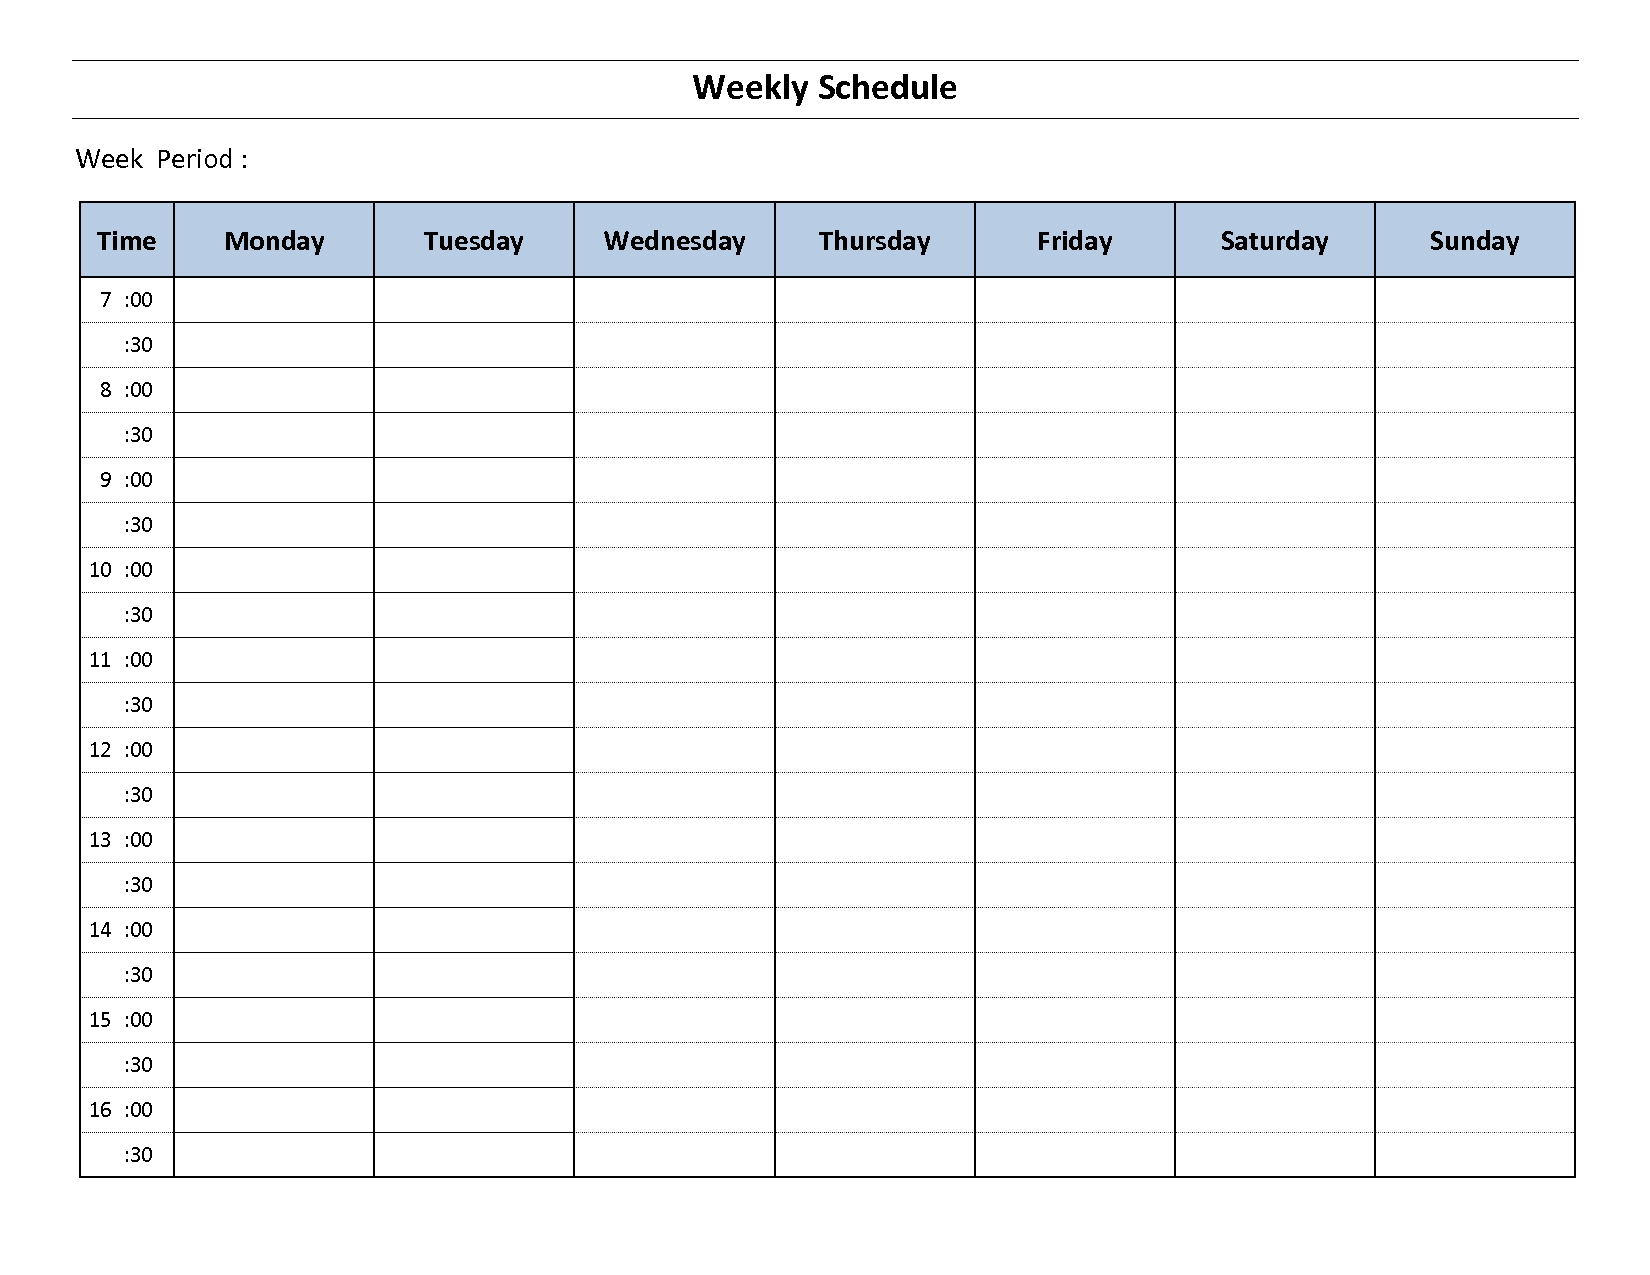 4 week schedule template co weekly calendar simple r w through to